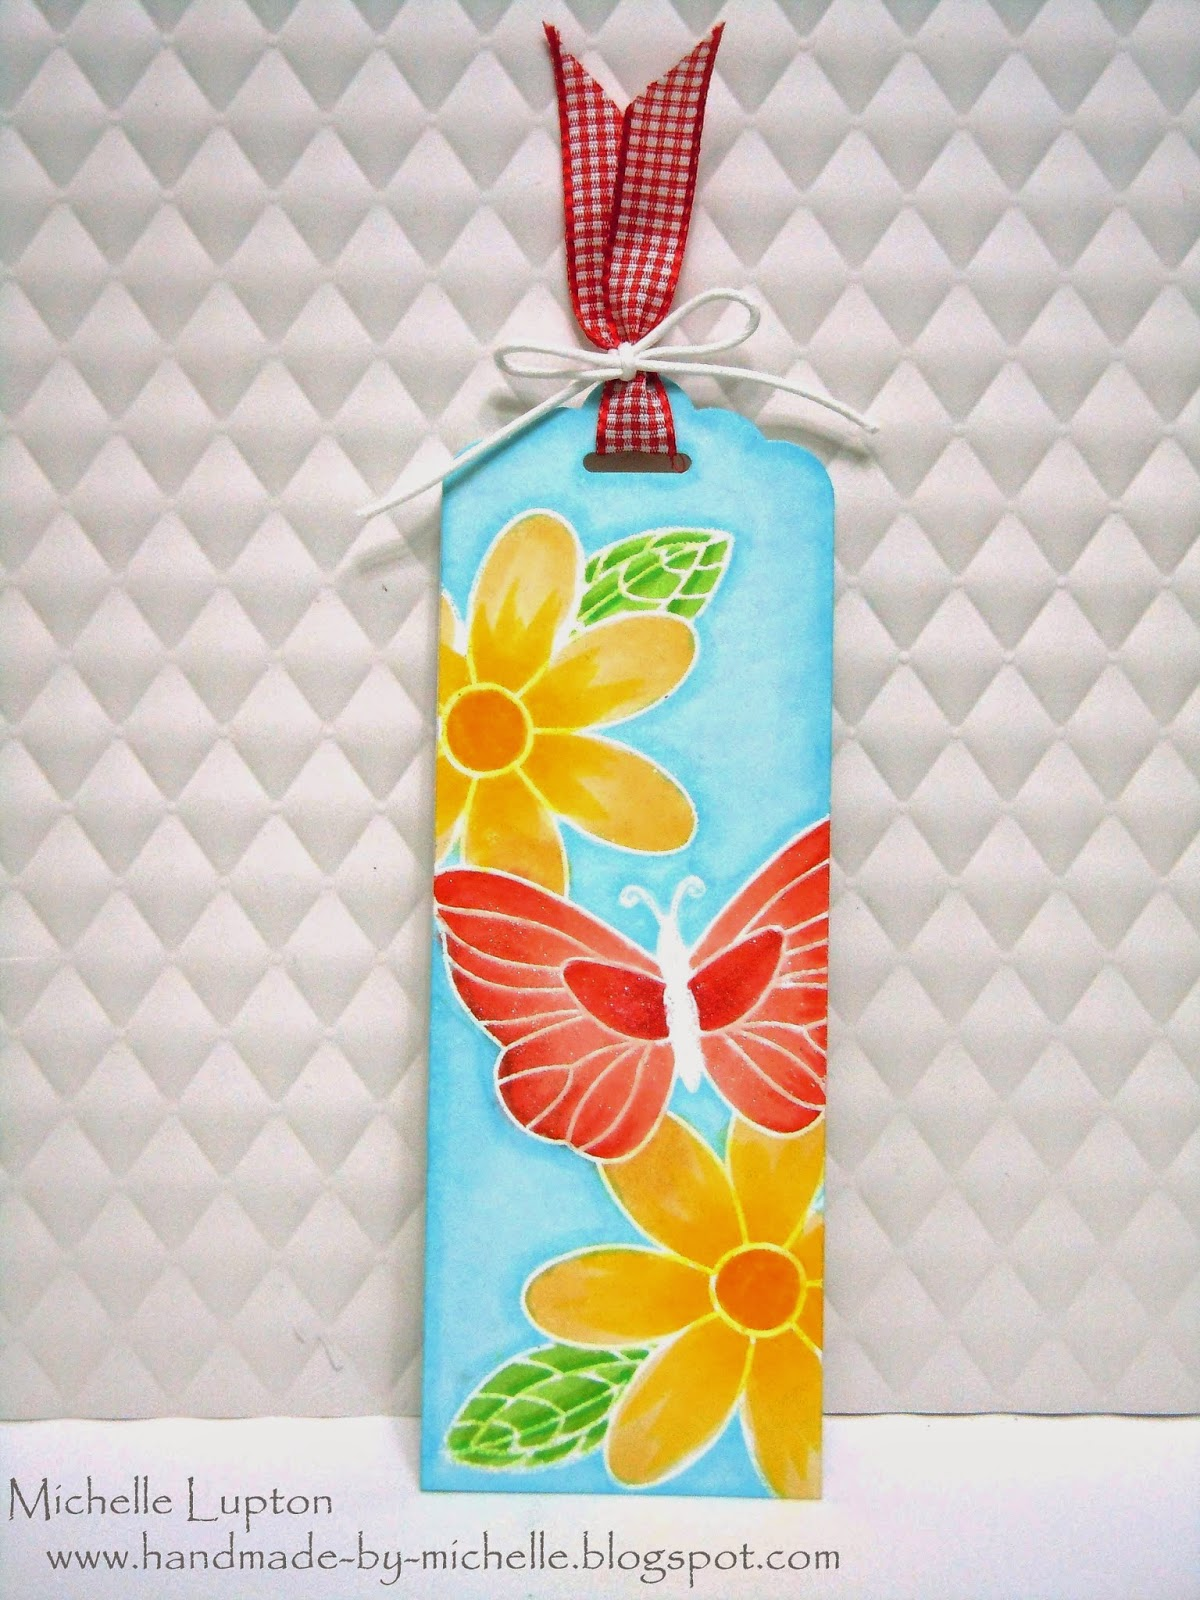 http://handmade-by-michelle.blogspot.com.au/2014/06/bookmark-caseing-kelly.html